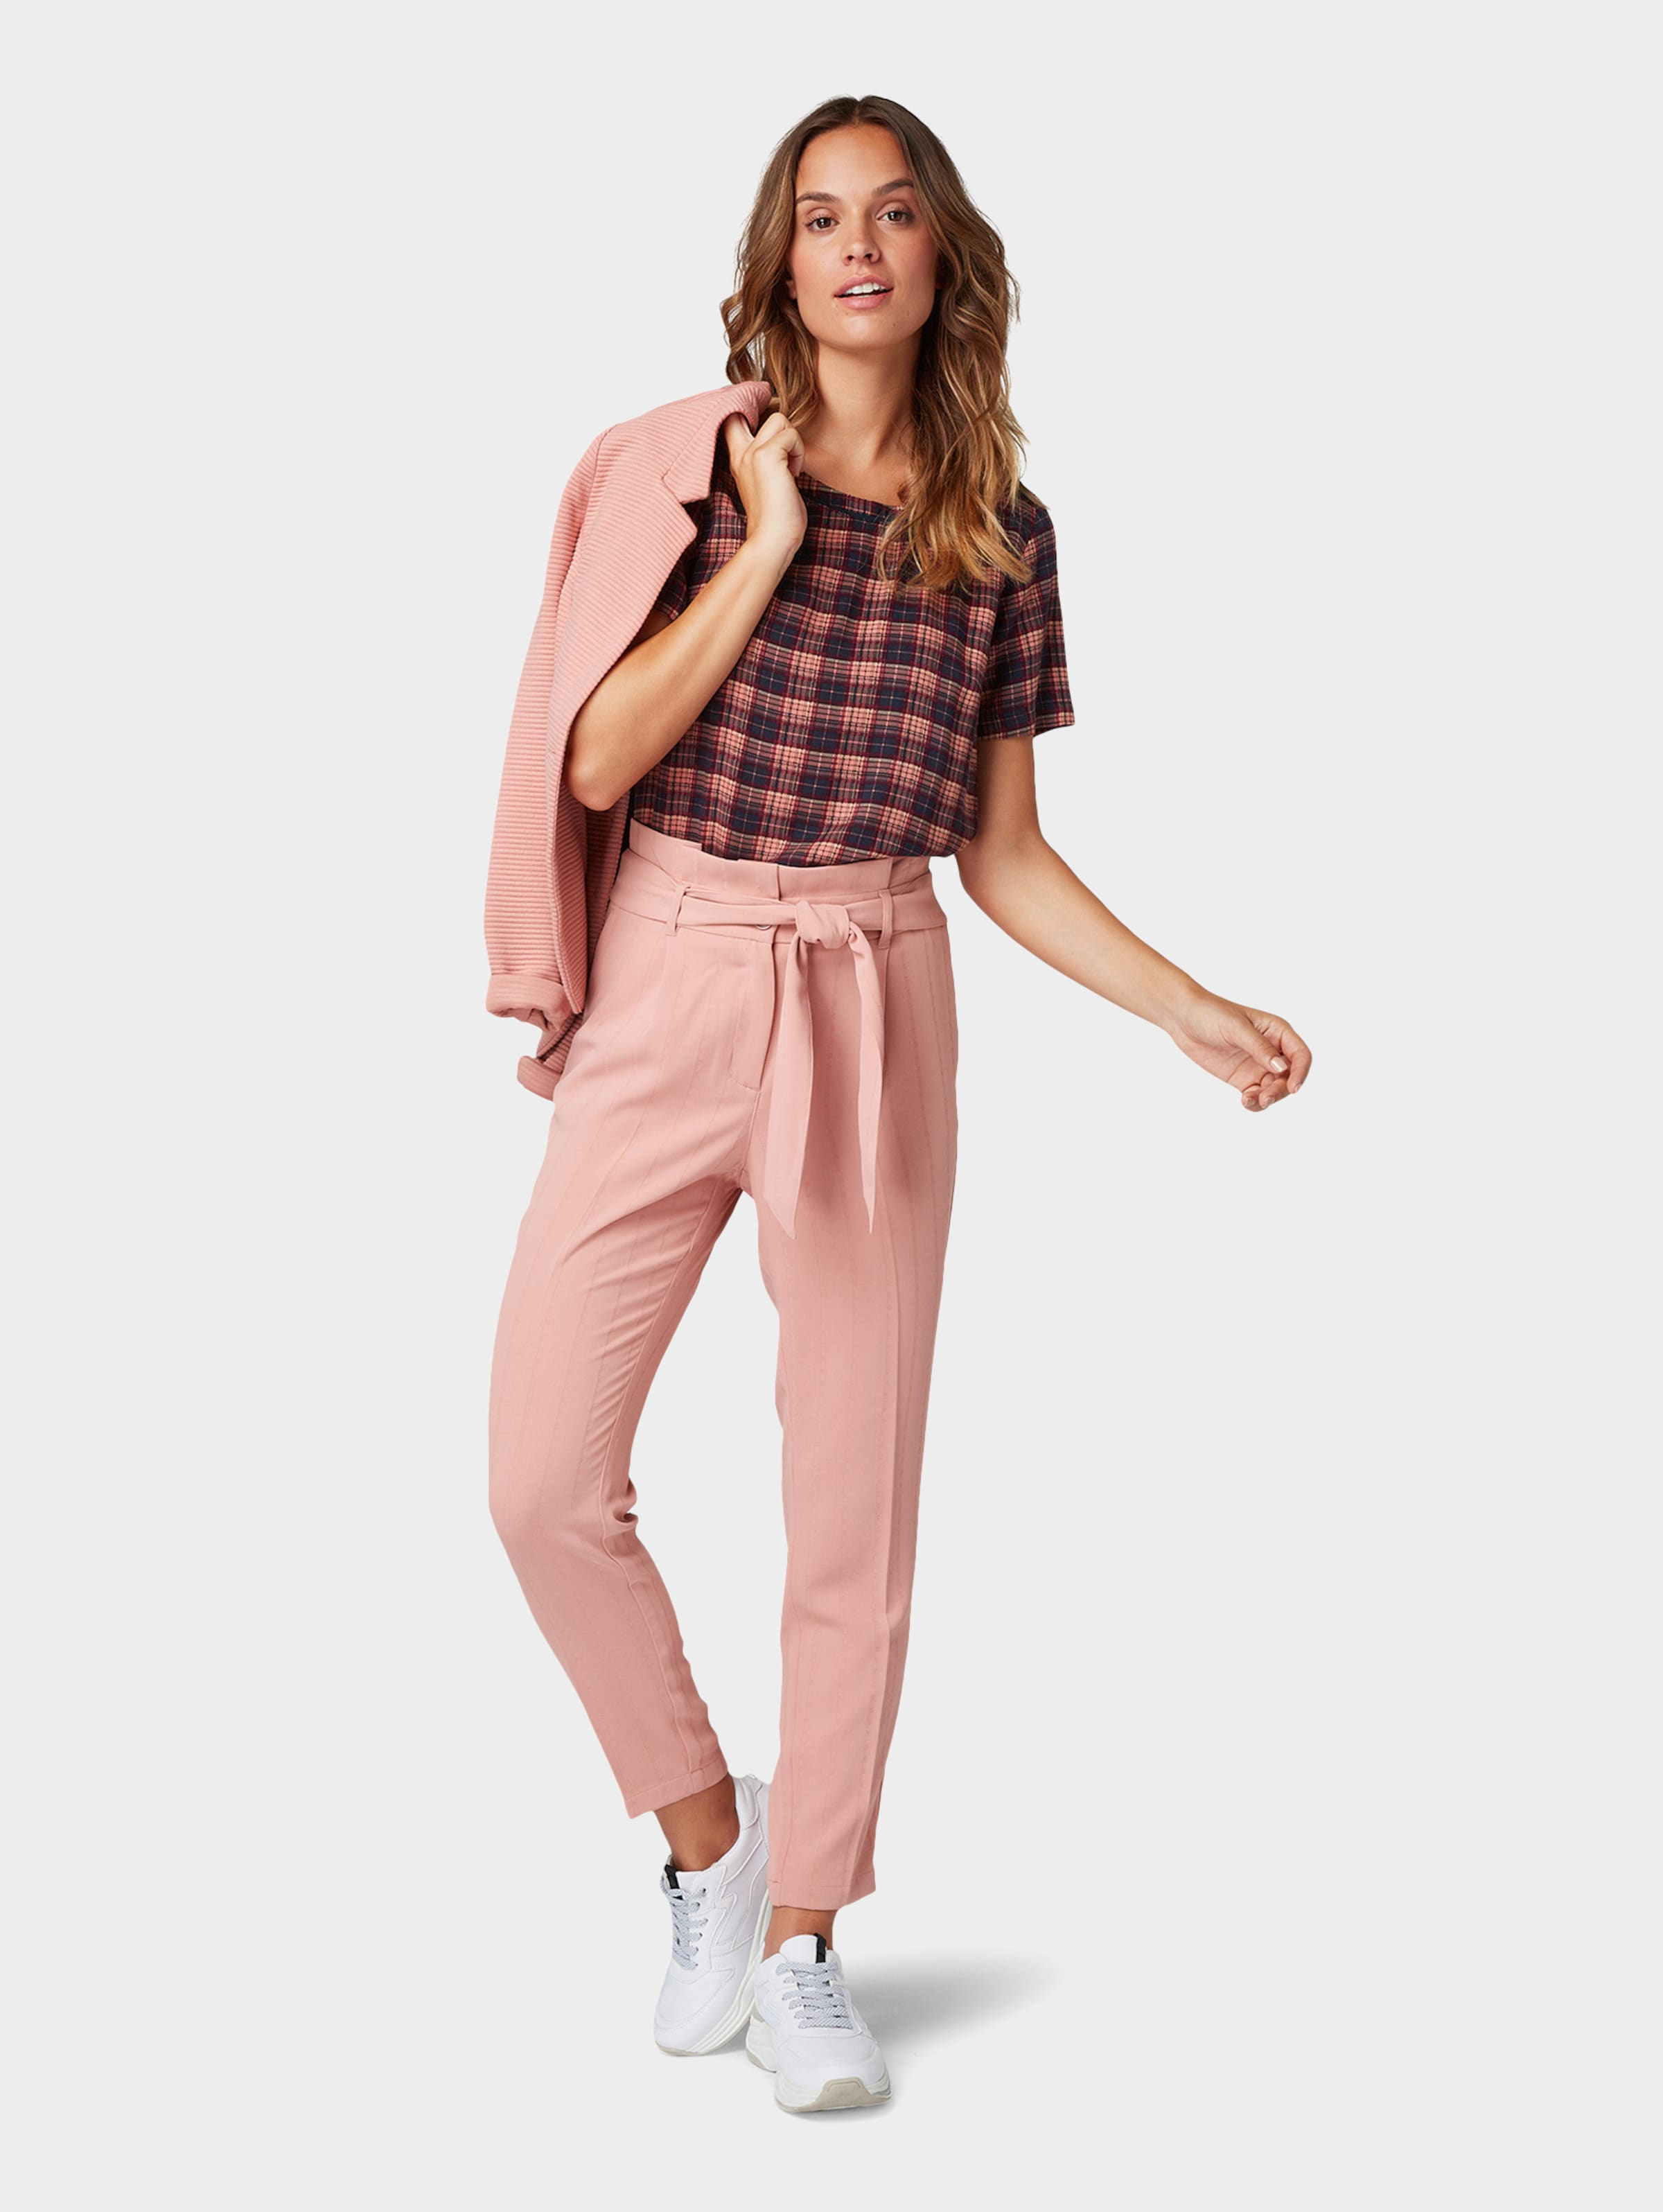 Tailor DunkelblauApricot DunkelblauApricot In In Tom Bluse Tailor Tom Bluse Tom gyY6bf7